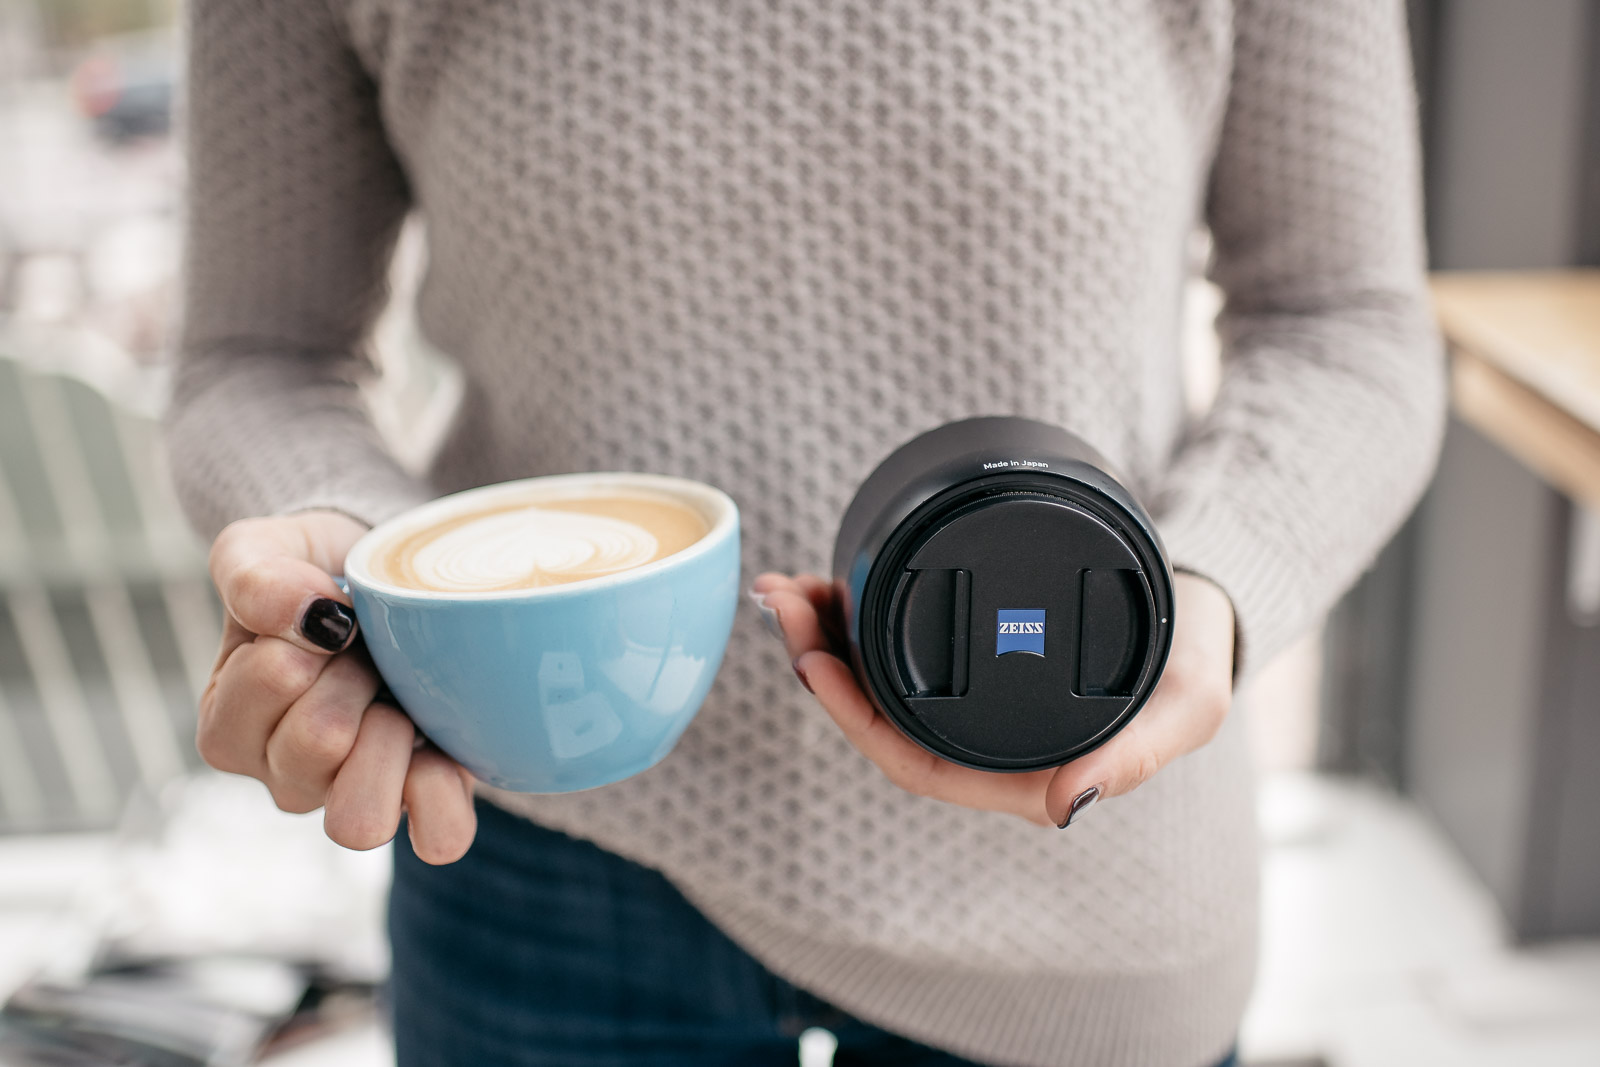 Size comparison of Zeiss Batis 85mm lens with latte